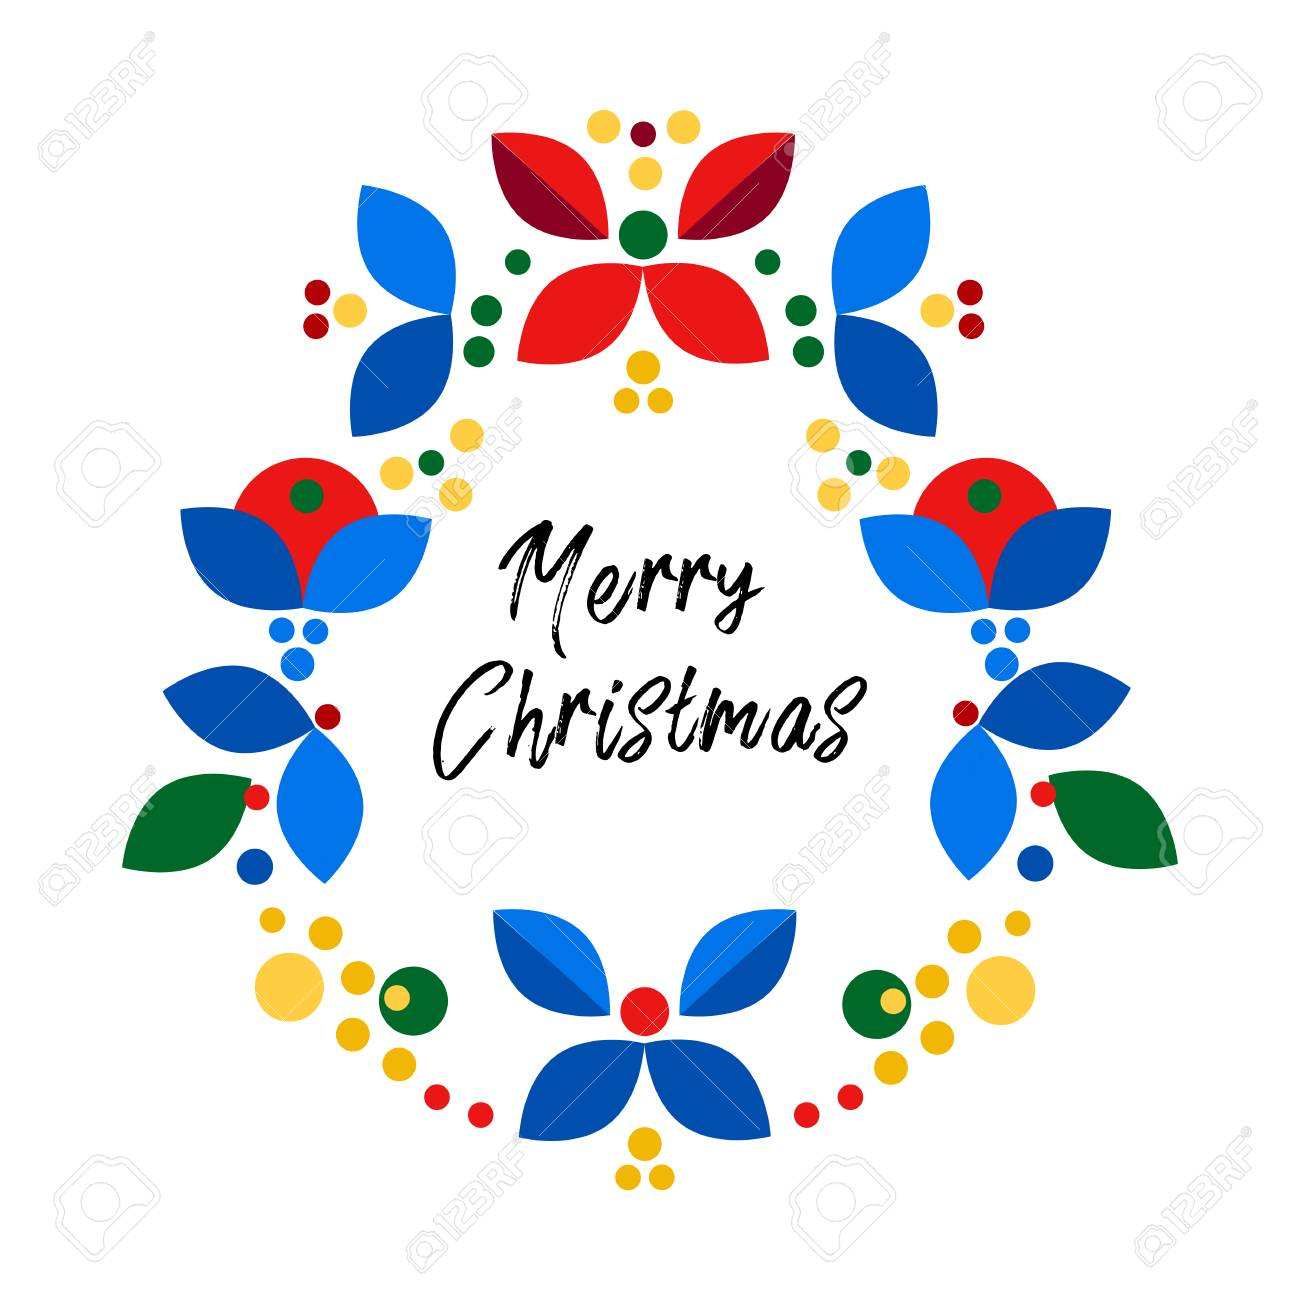 merry christmas happy new year card design abstract flat xmas wreath traditional winter holidays